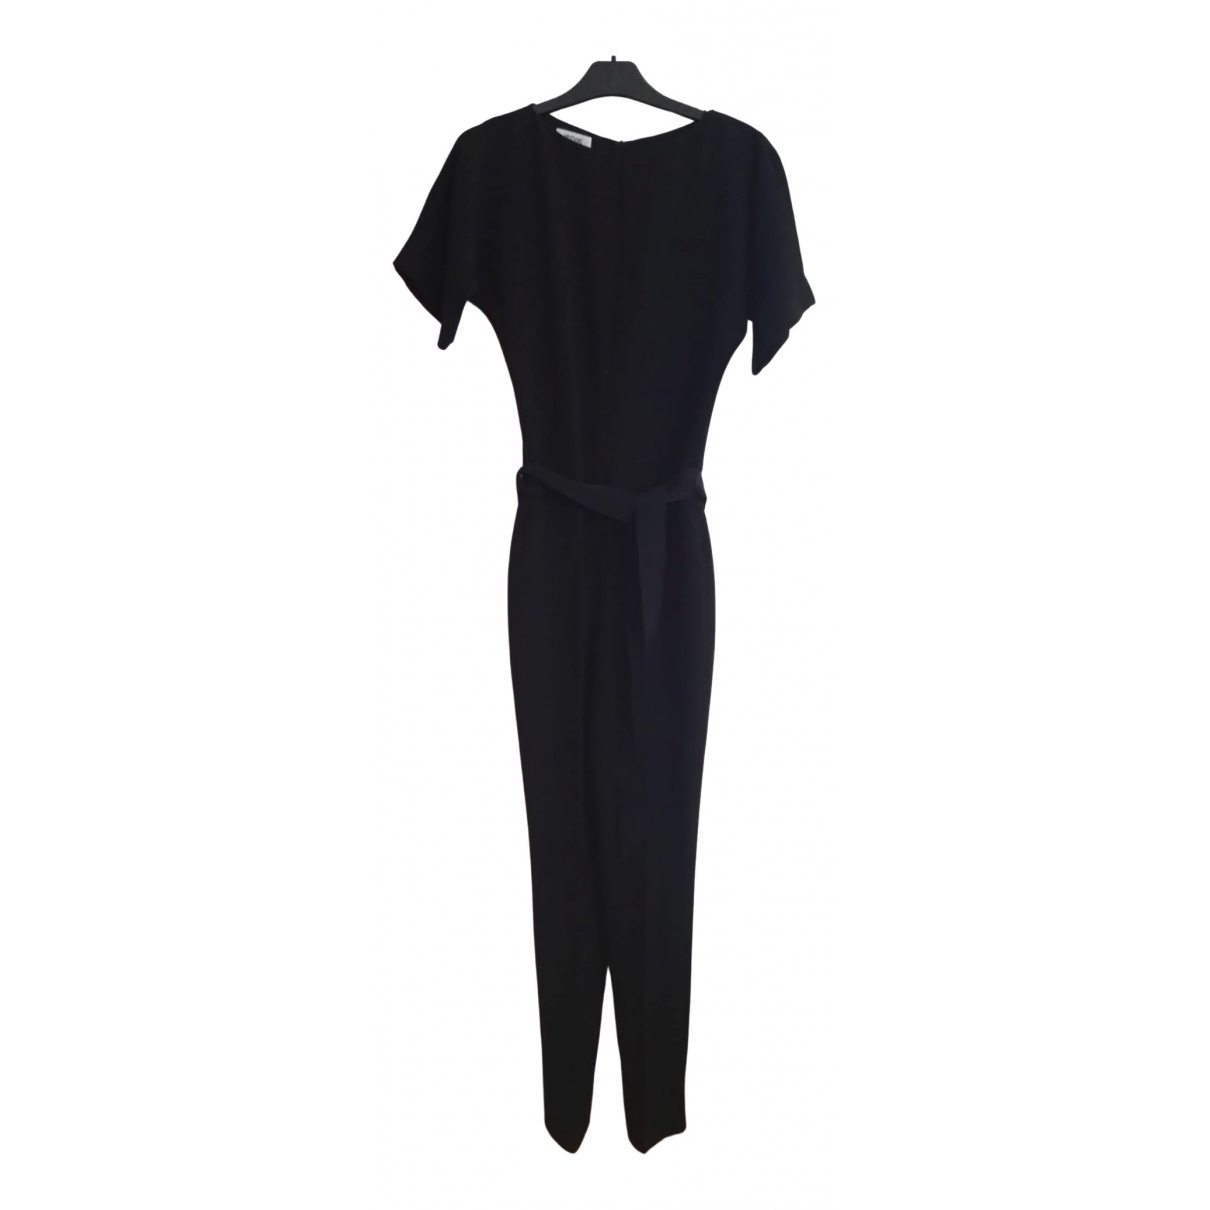 Moschino \N Black jumpsuit for Women 40 IT